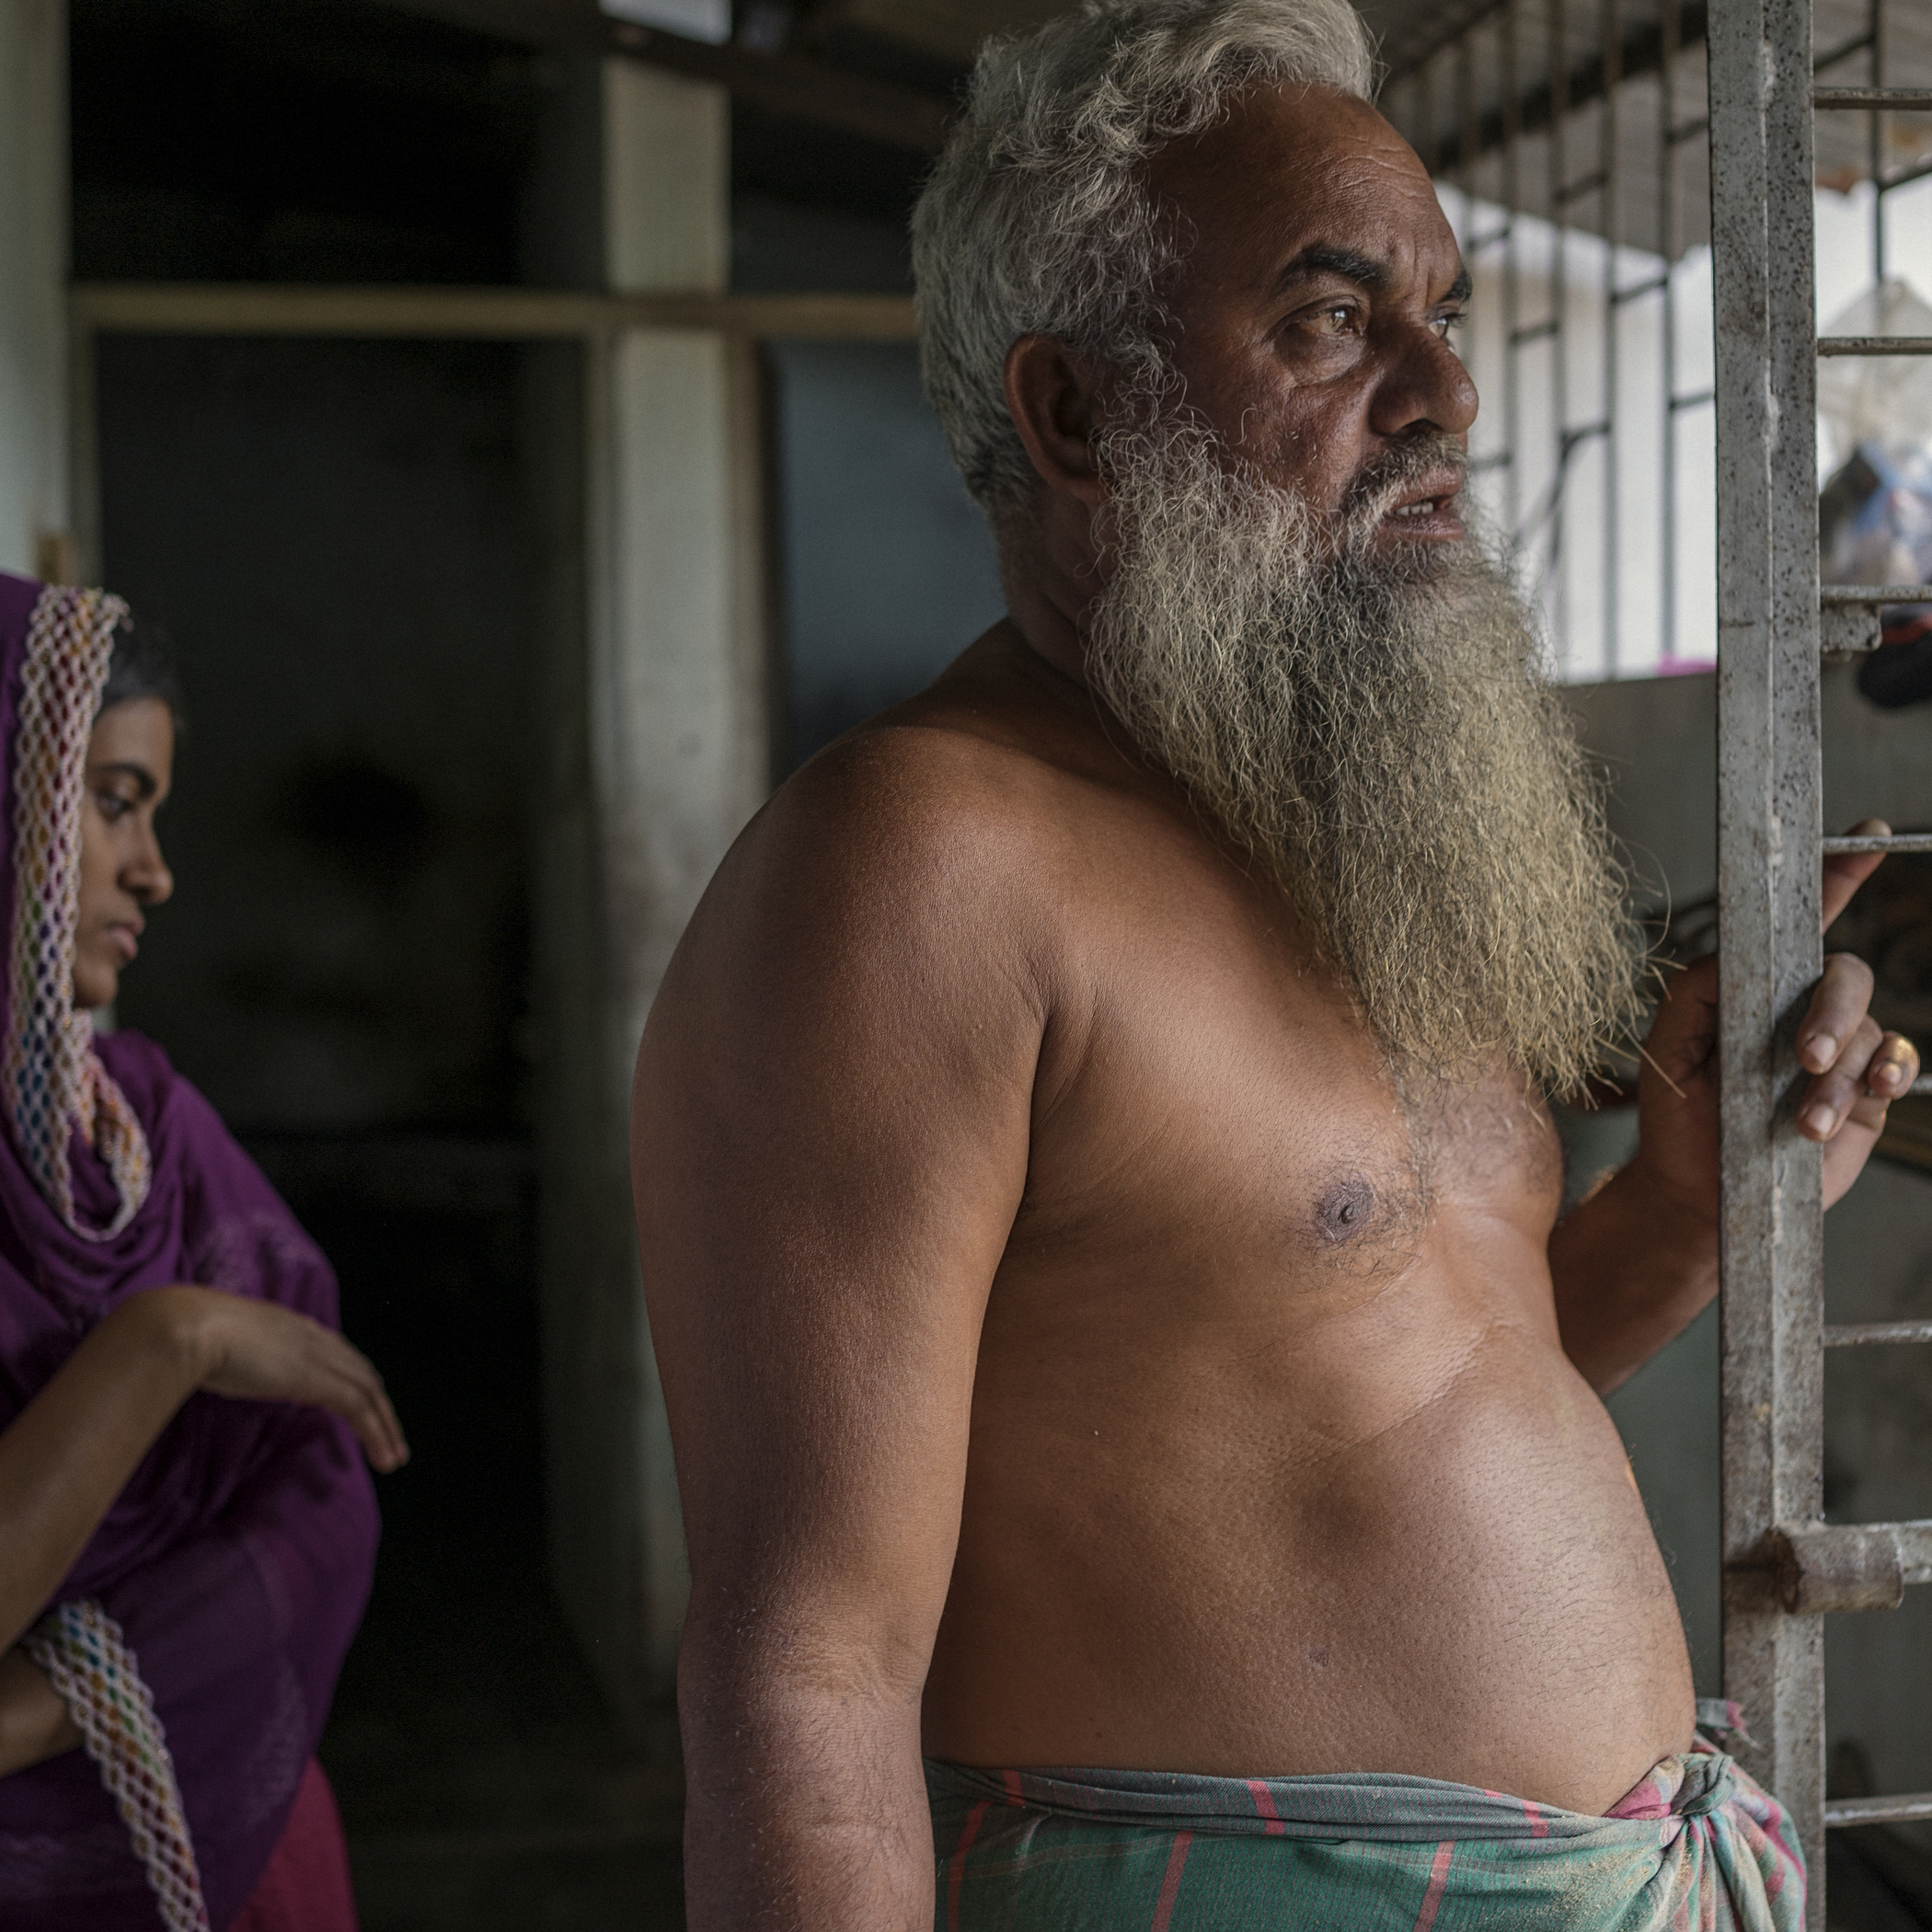 Toslim Mulla, a distant relative of Taslima, looks blankly at the window through which Rana Plaza could be viewed from their house, and gives an account of the disaster.